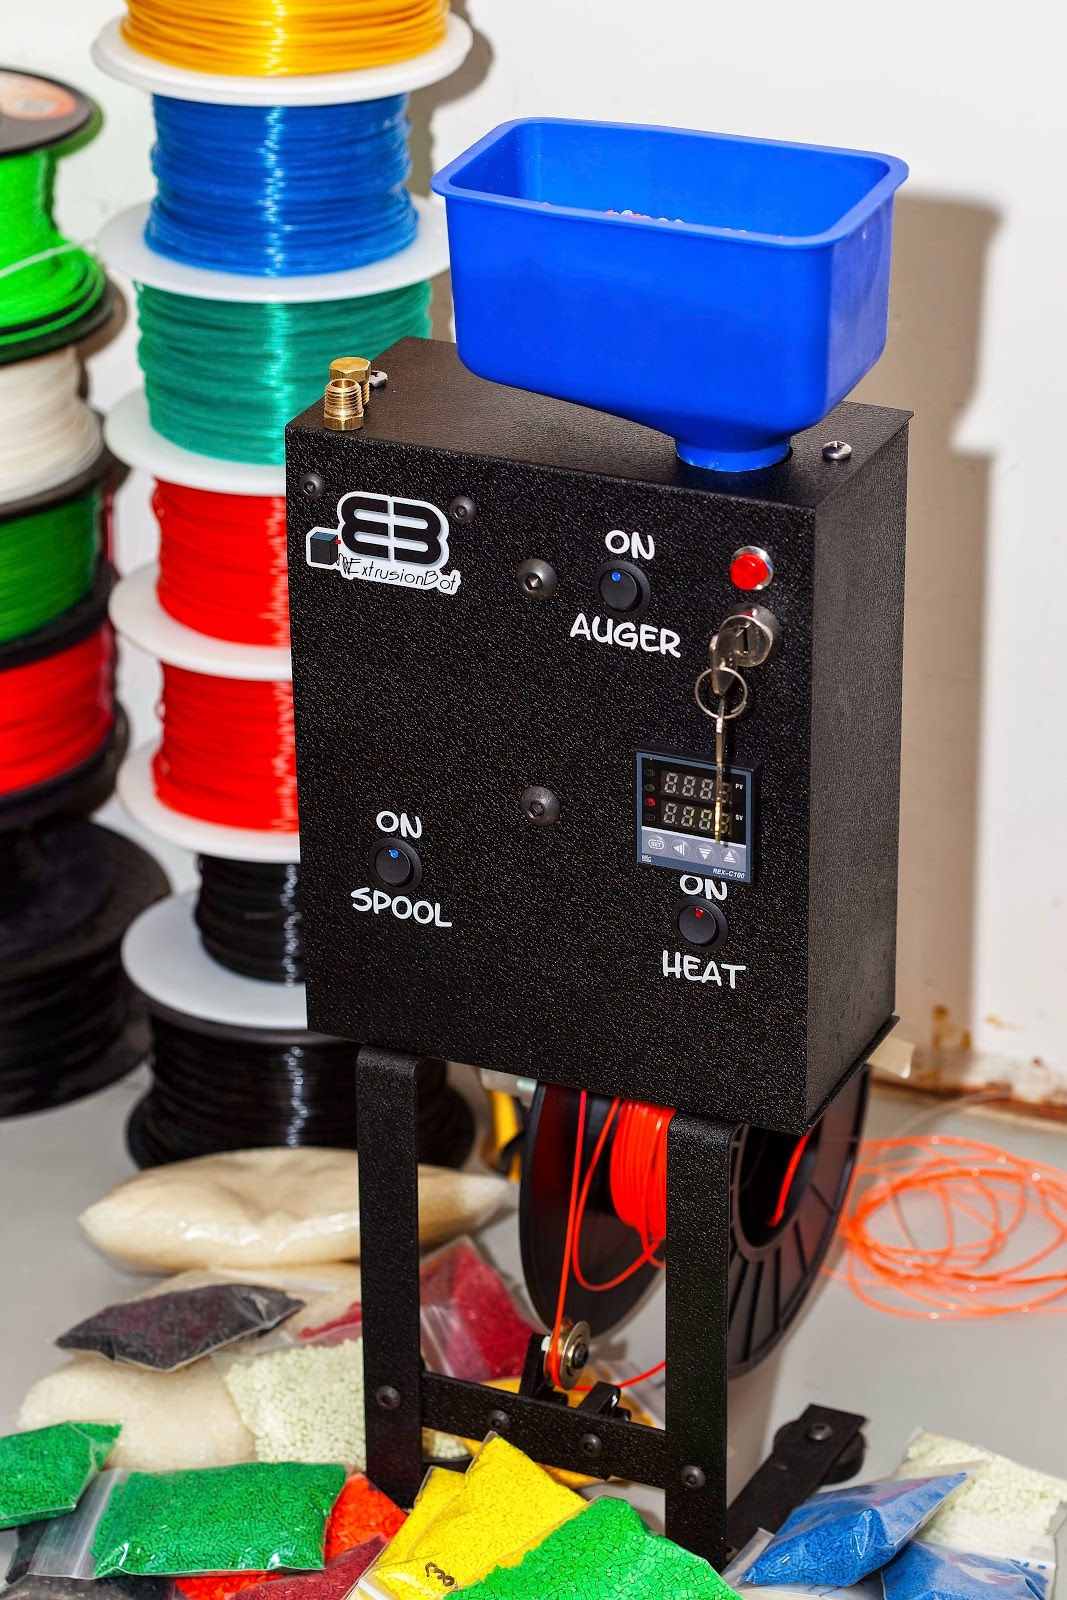 Make Your Own 3D Printer Filament with the ExtrusionBot